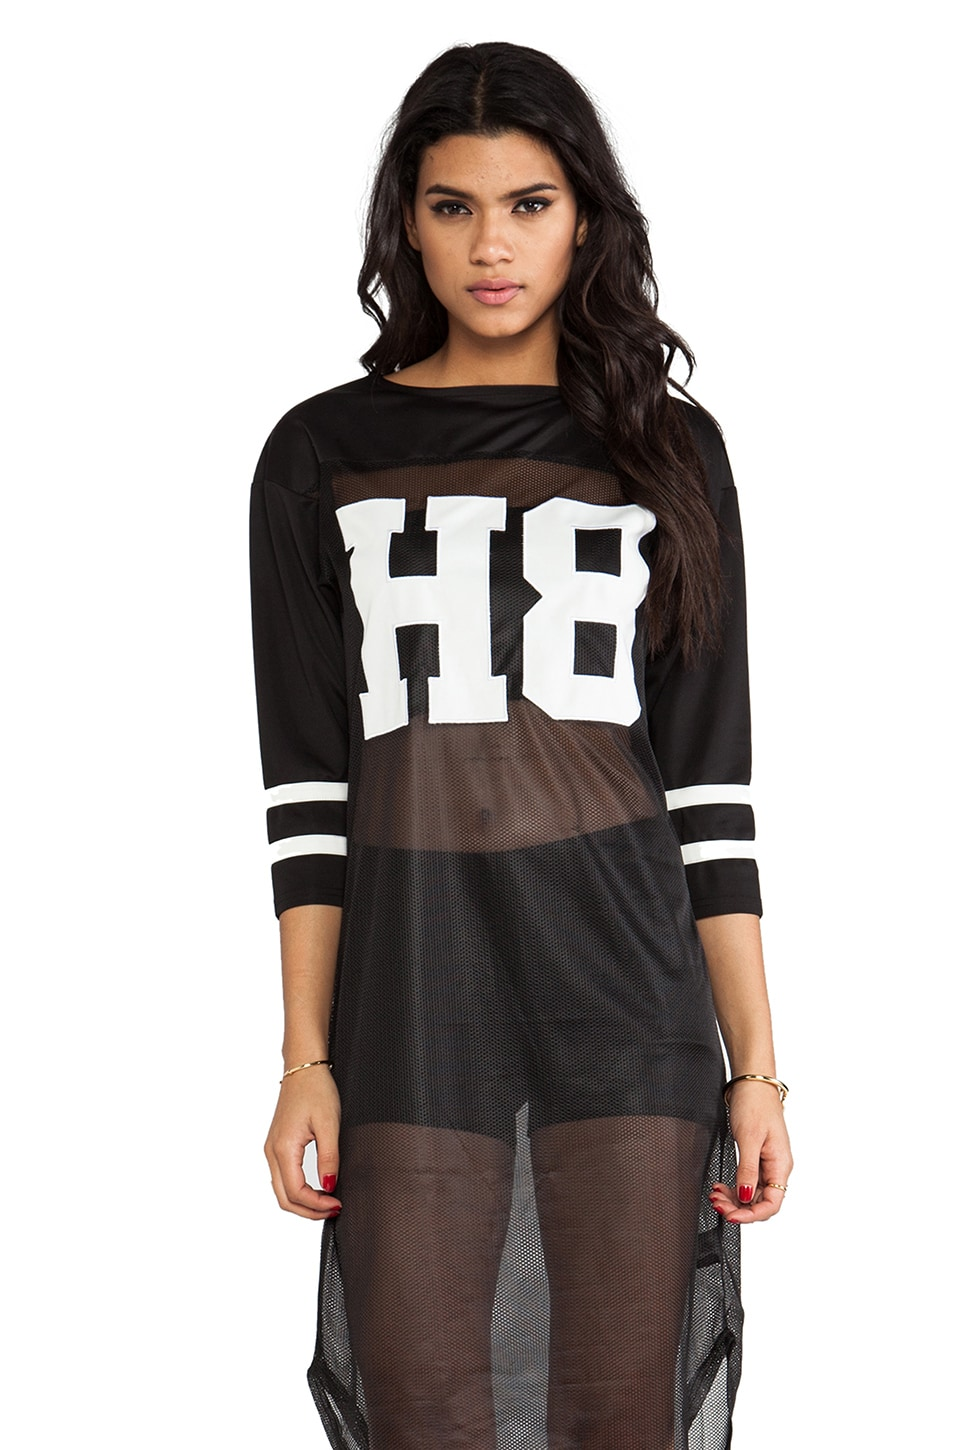 UNIF H8 Jersey Dress in Black